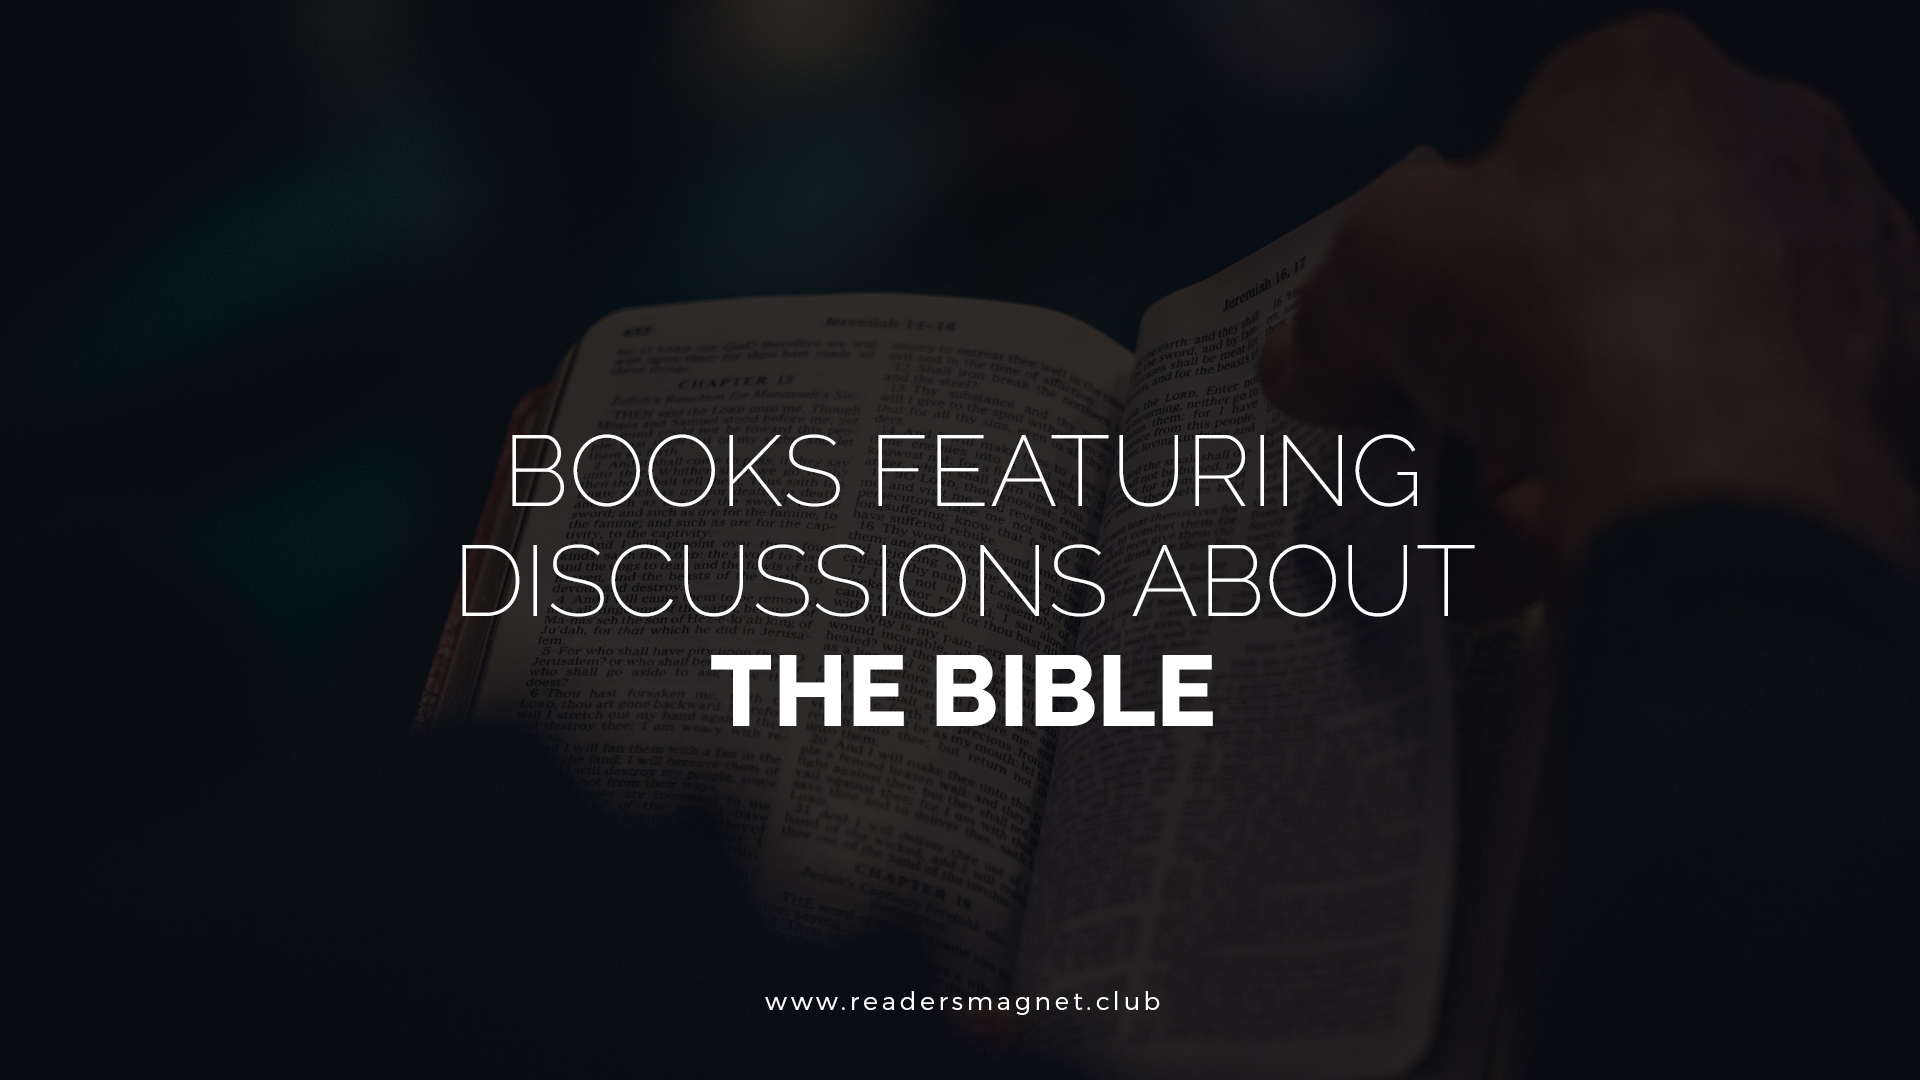 Books Featuring Discussions About the Bible banner